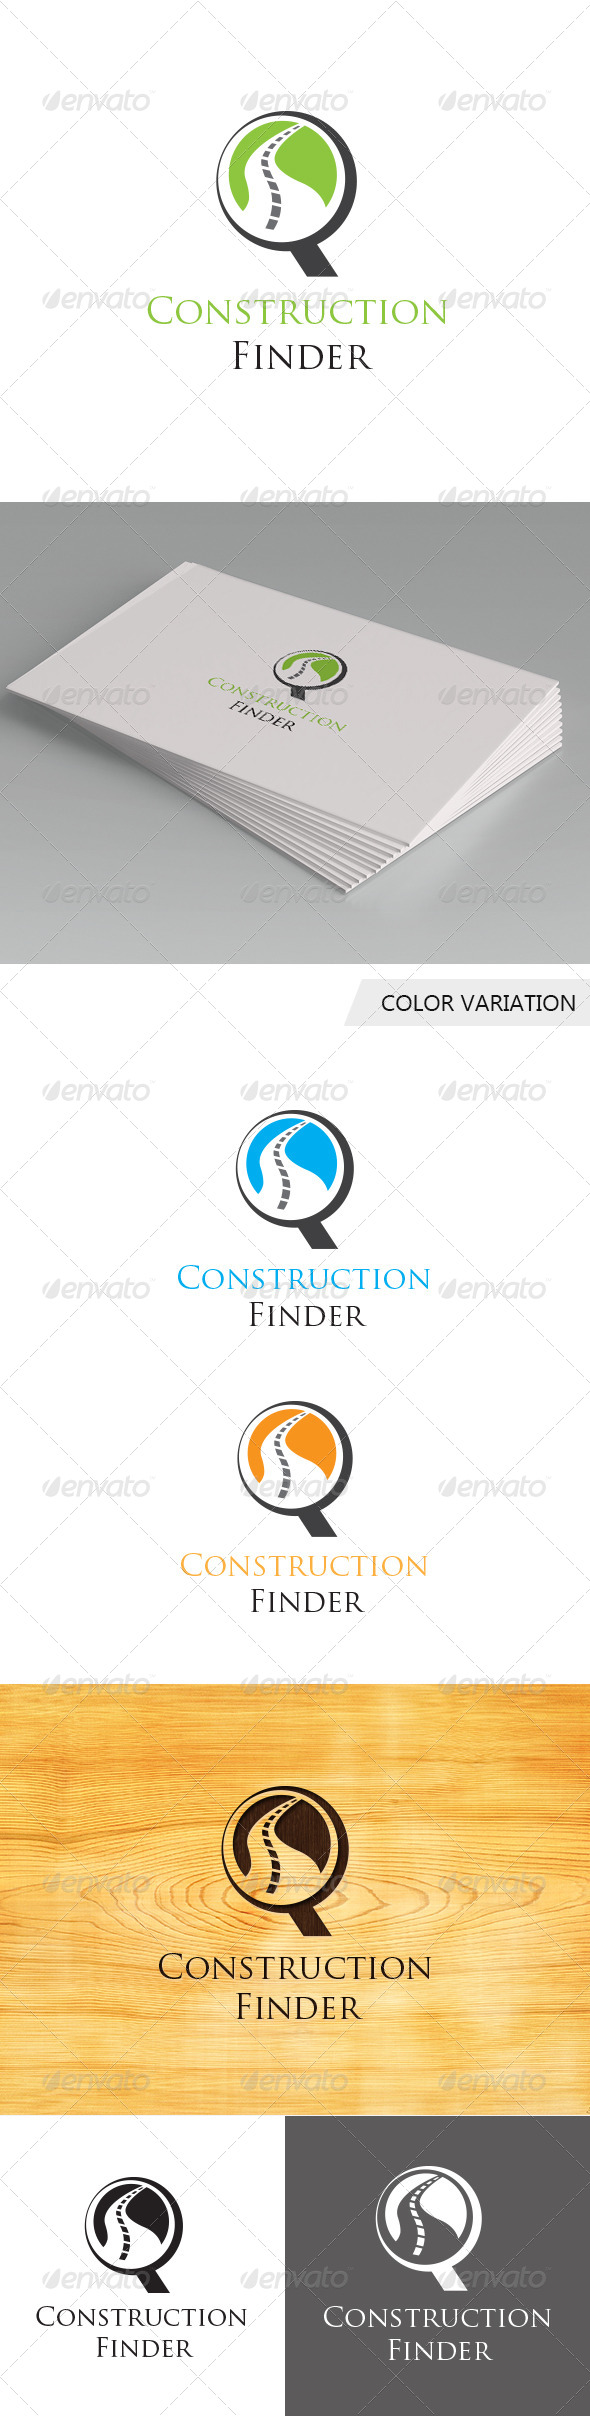 GraphicRiver Construction Finder Logo Template 5676900